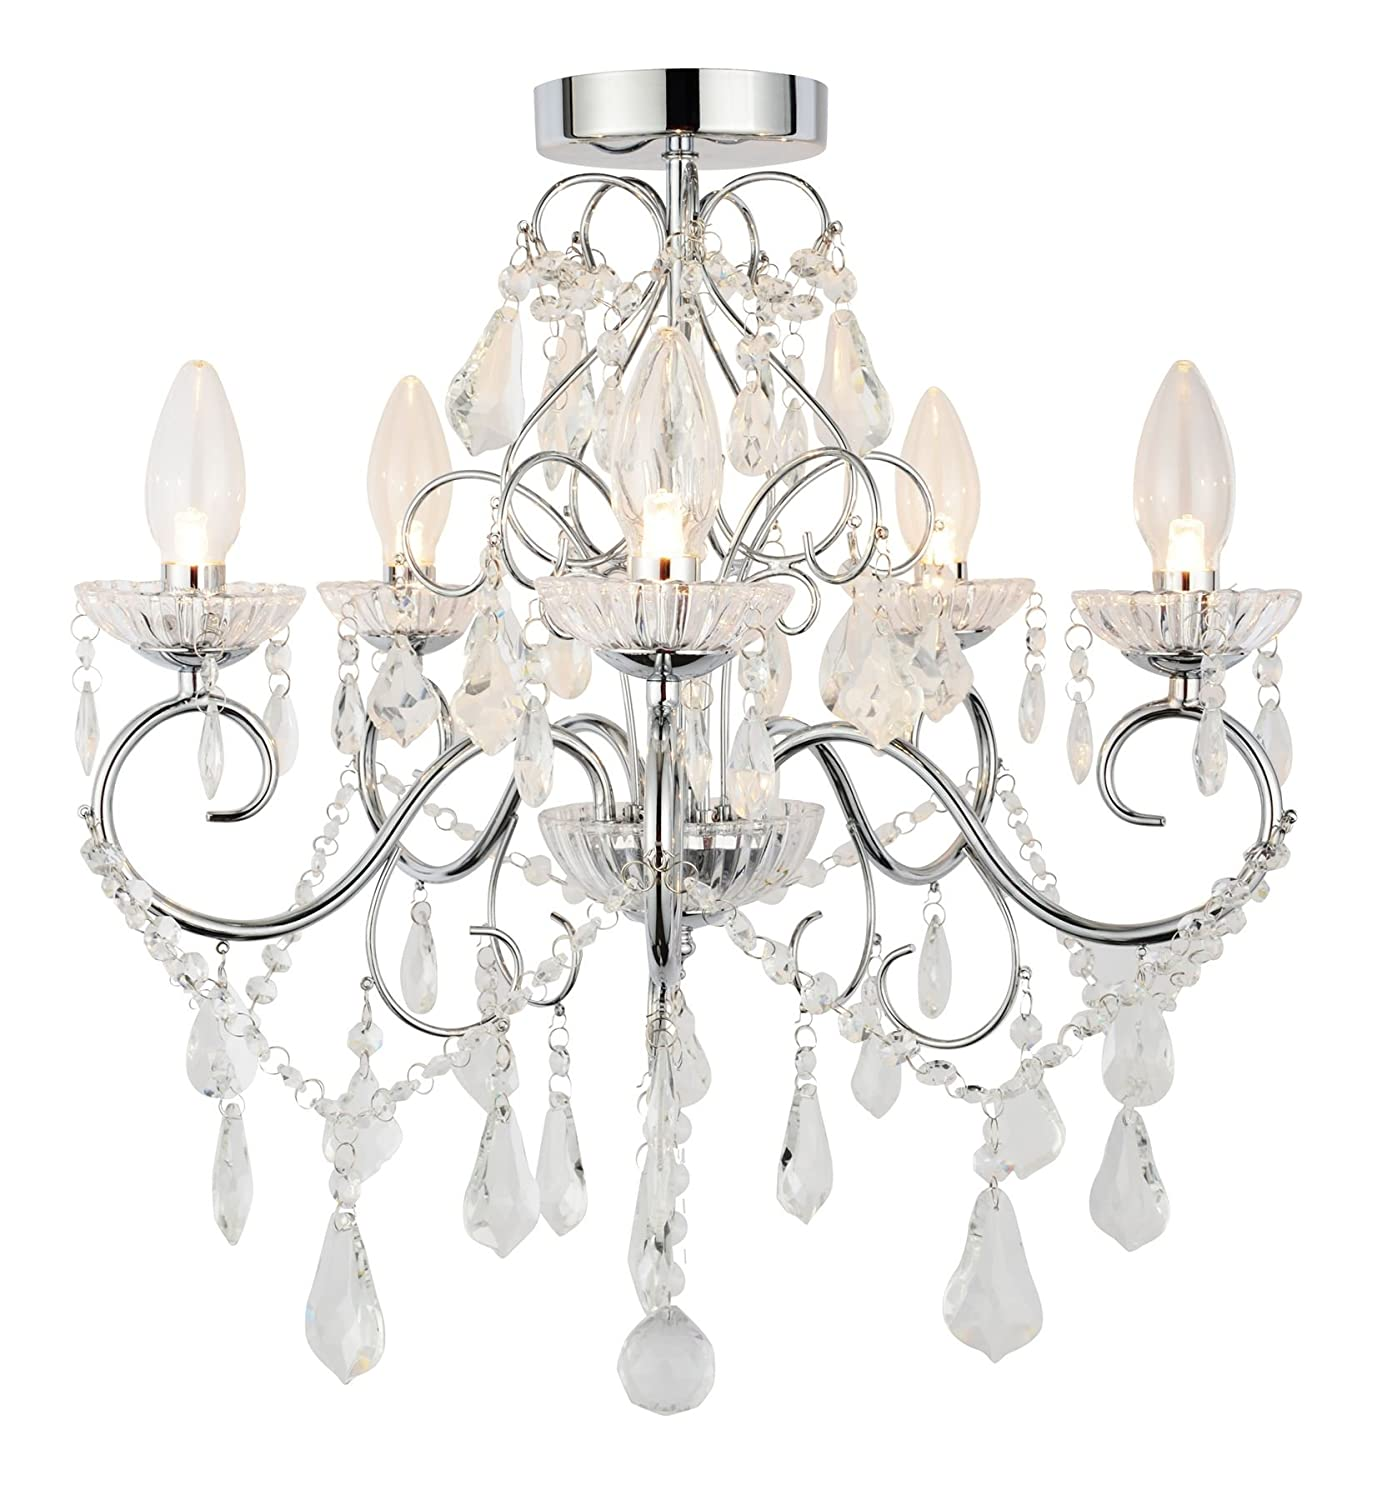 5 light ip44 rated chandelier amazon lighting arubaitofo Image collections